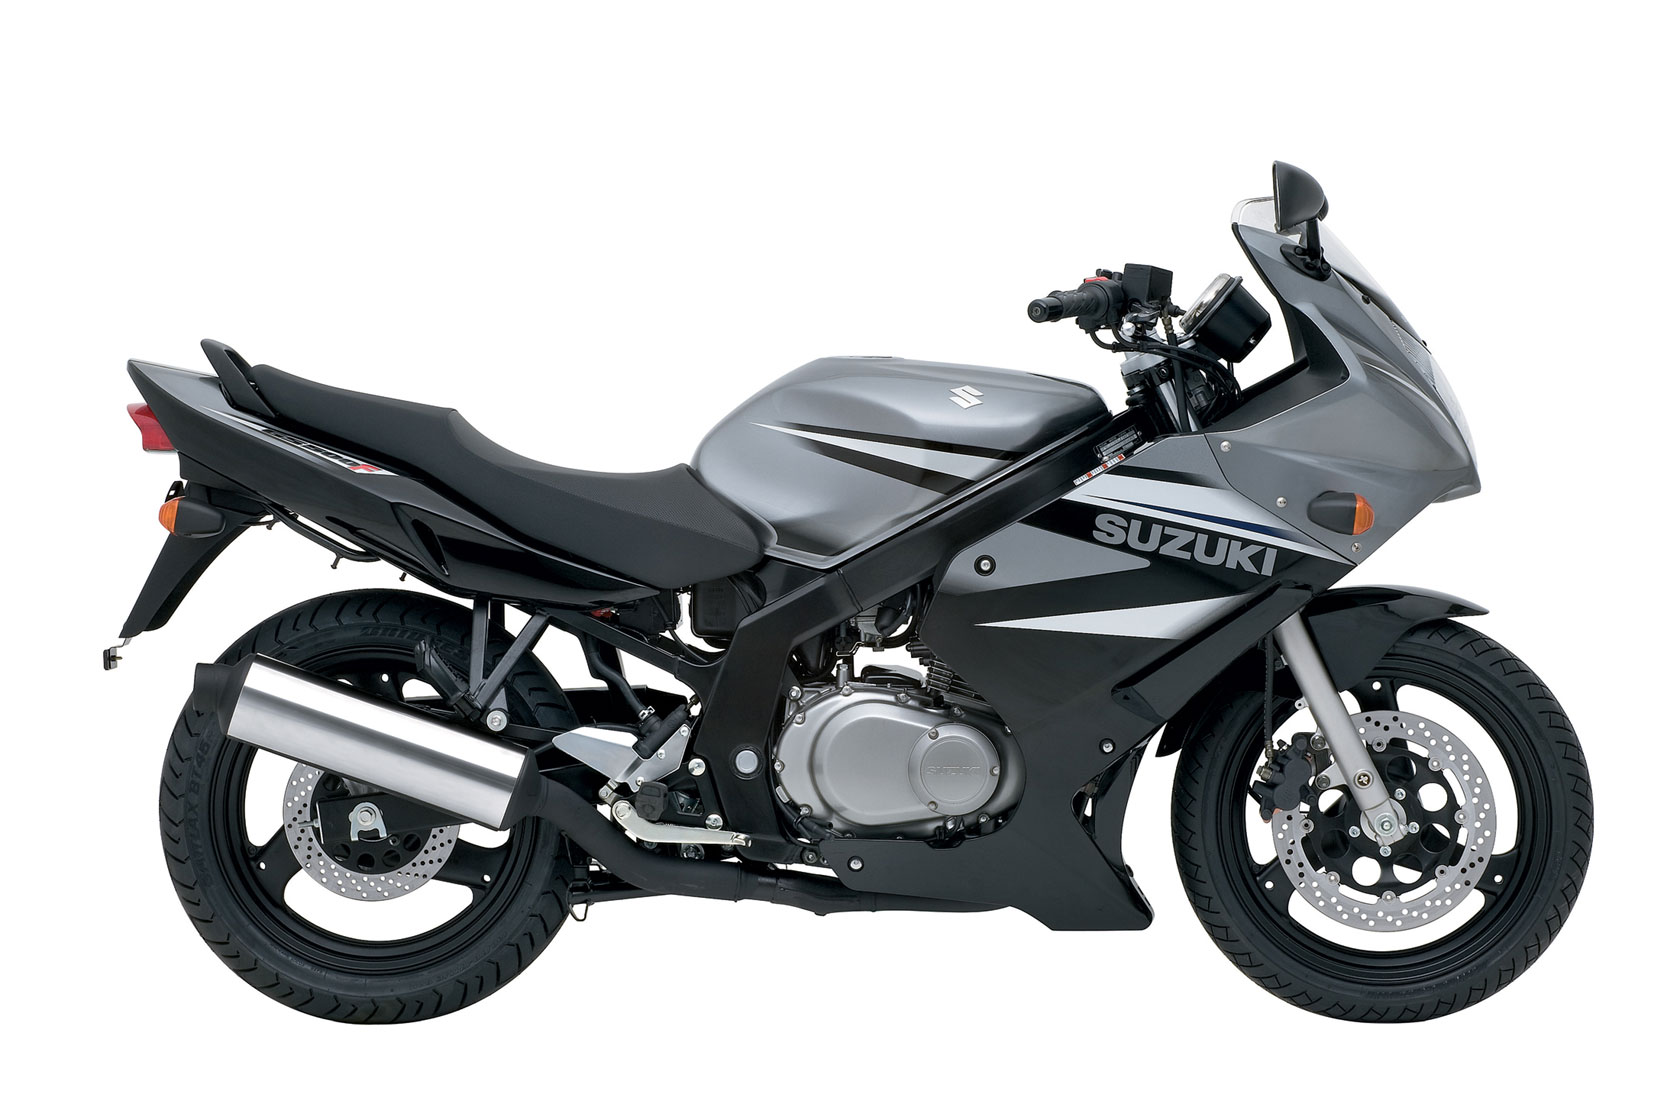 2009 Suzuki GS500F Photo